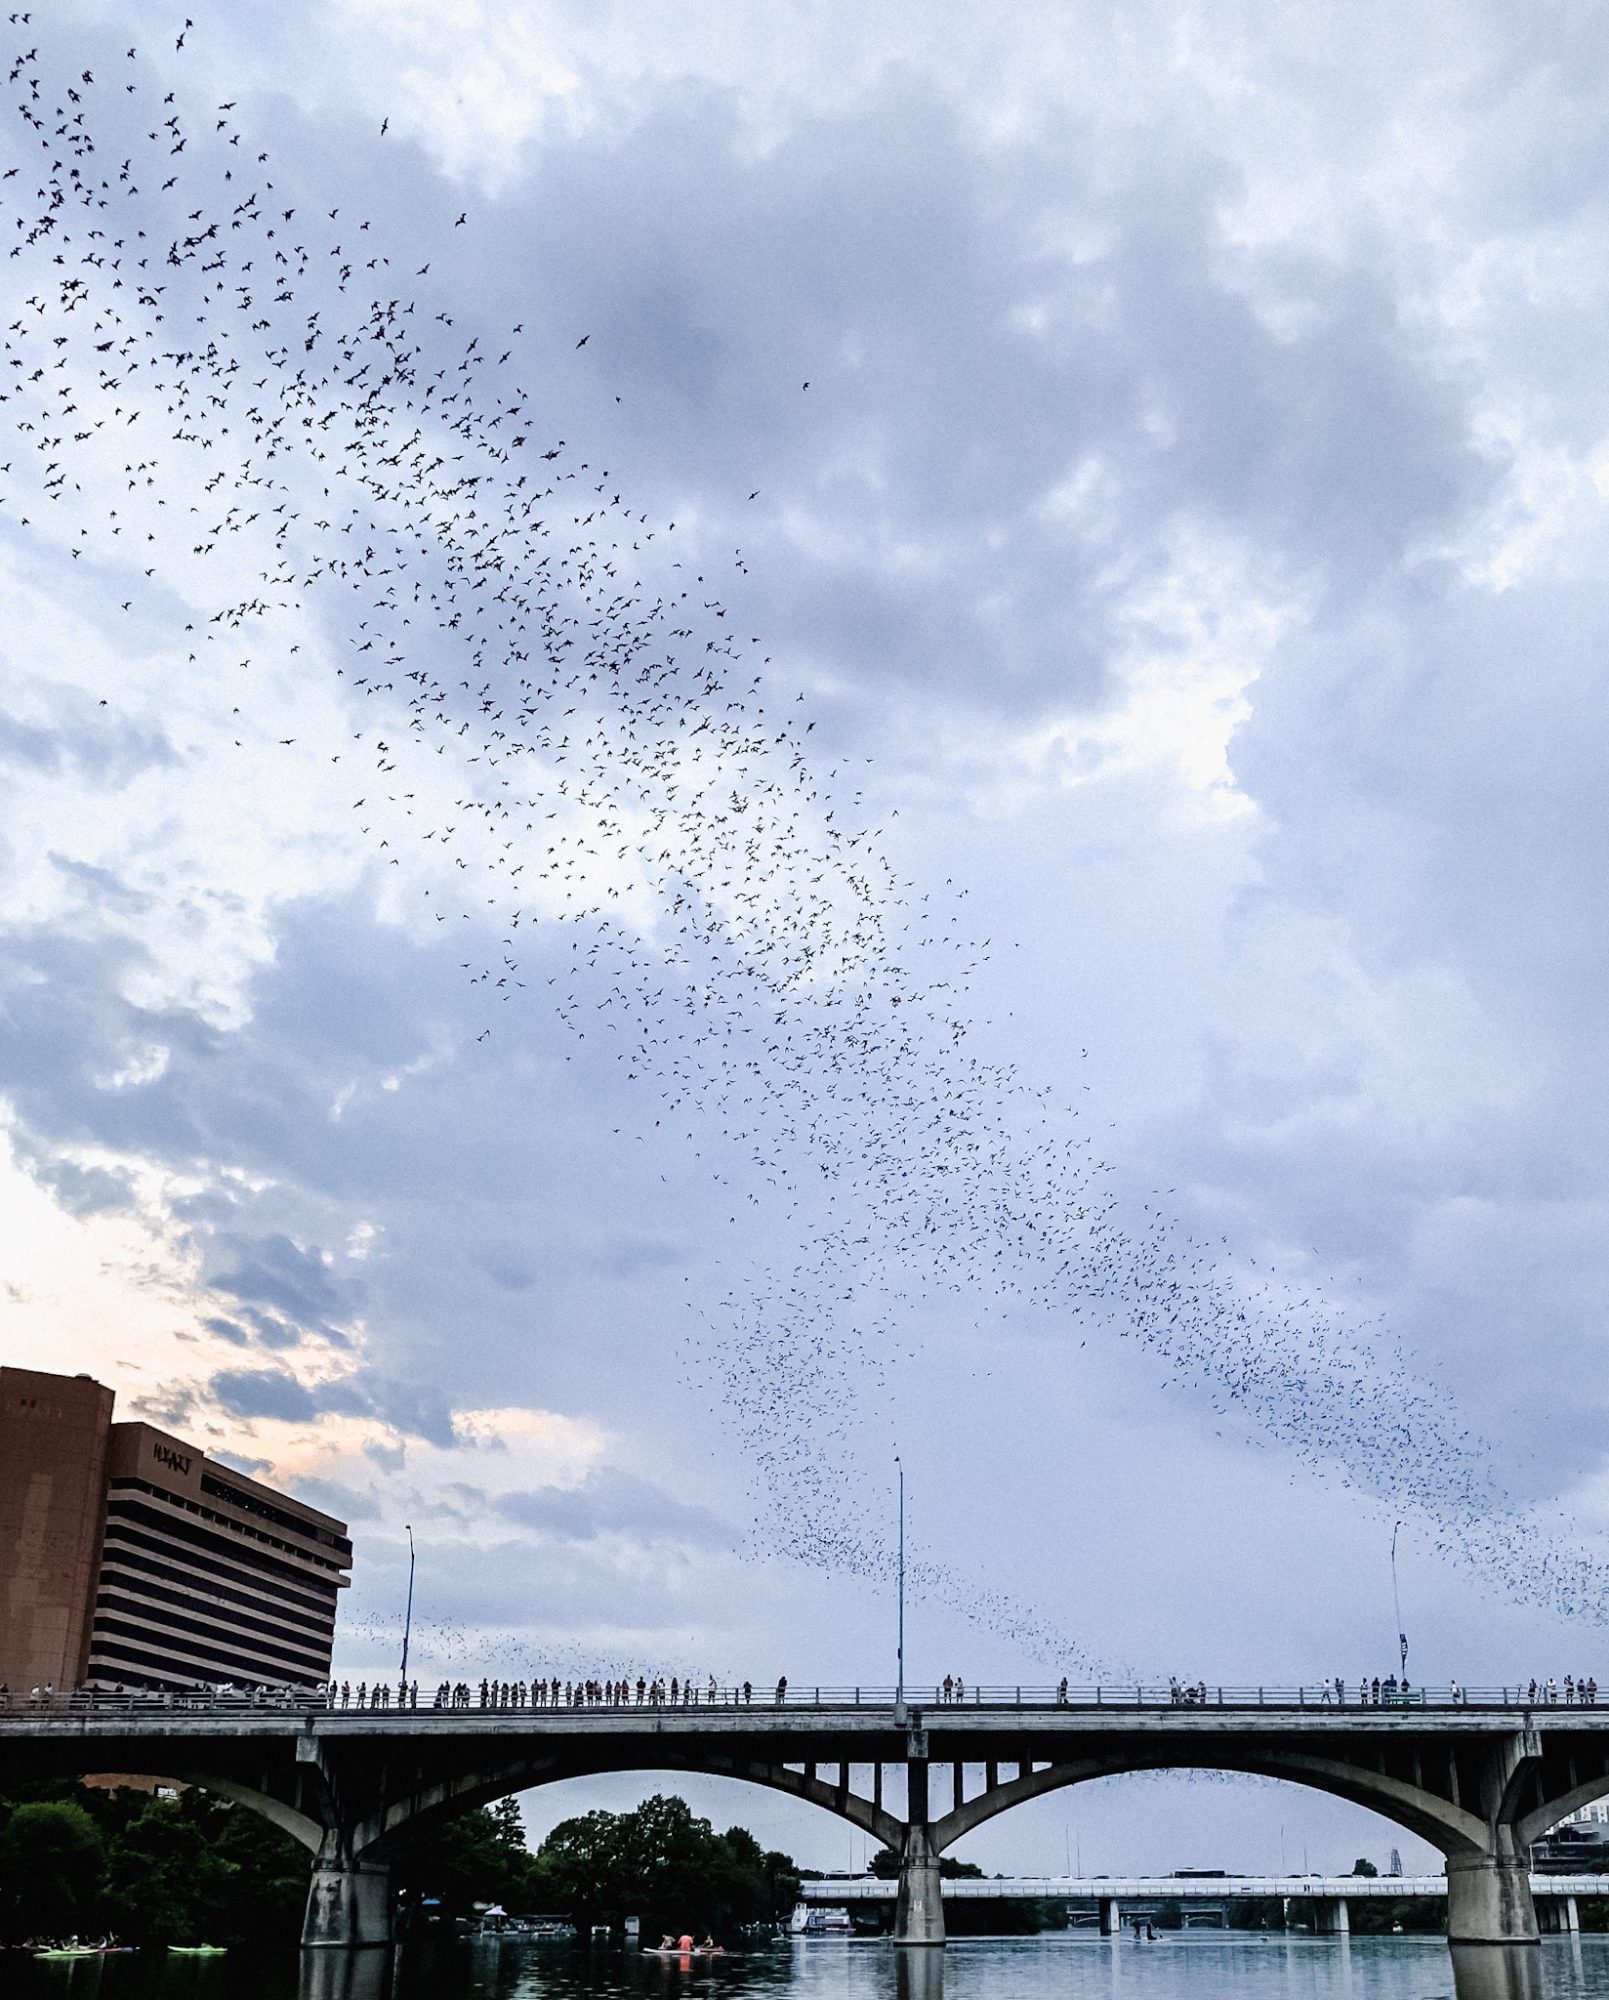 watching the Congress Bridge bats is one of the best things to do in Austin